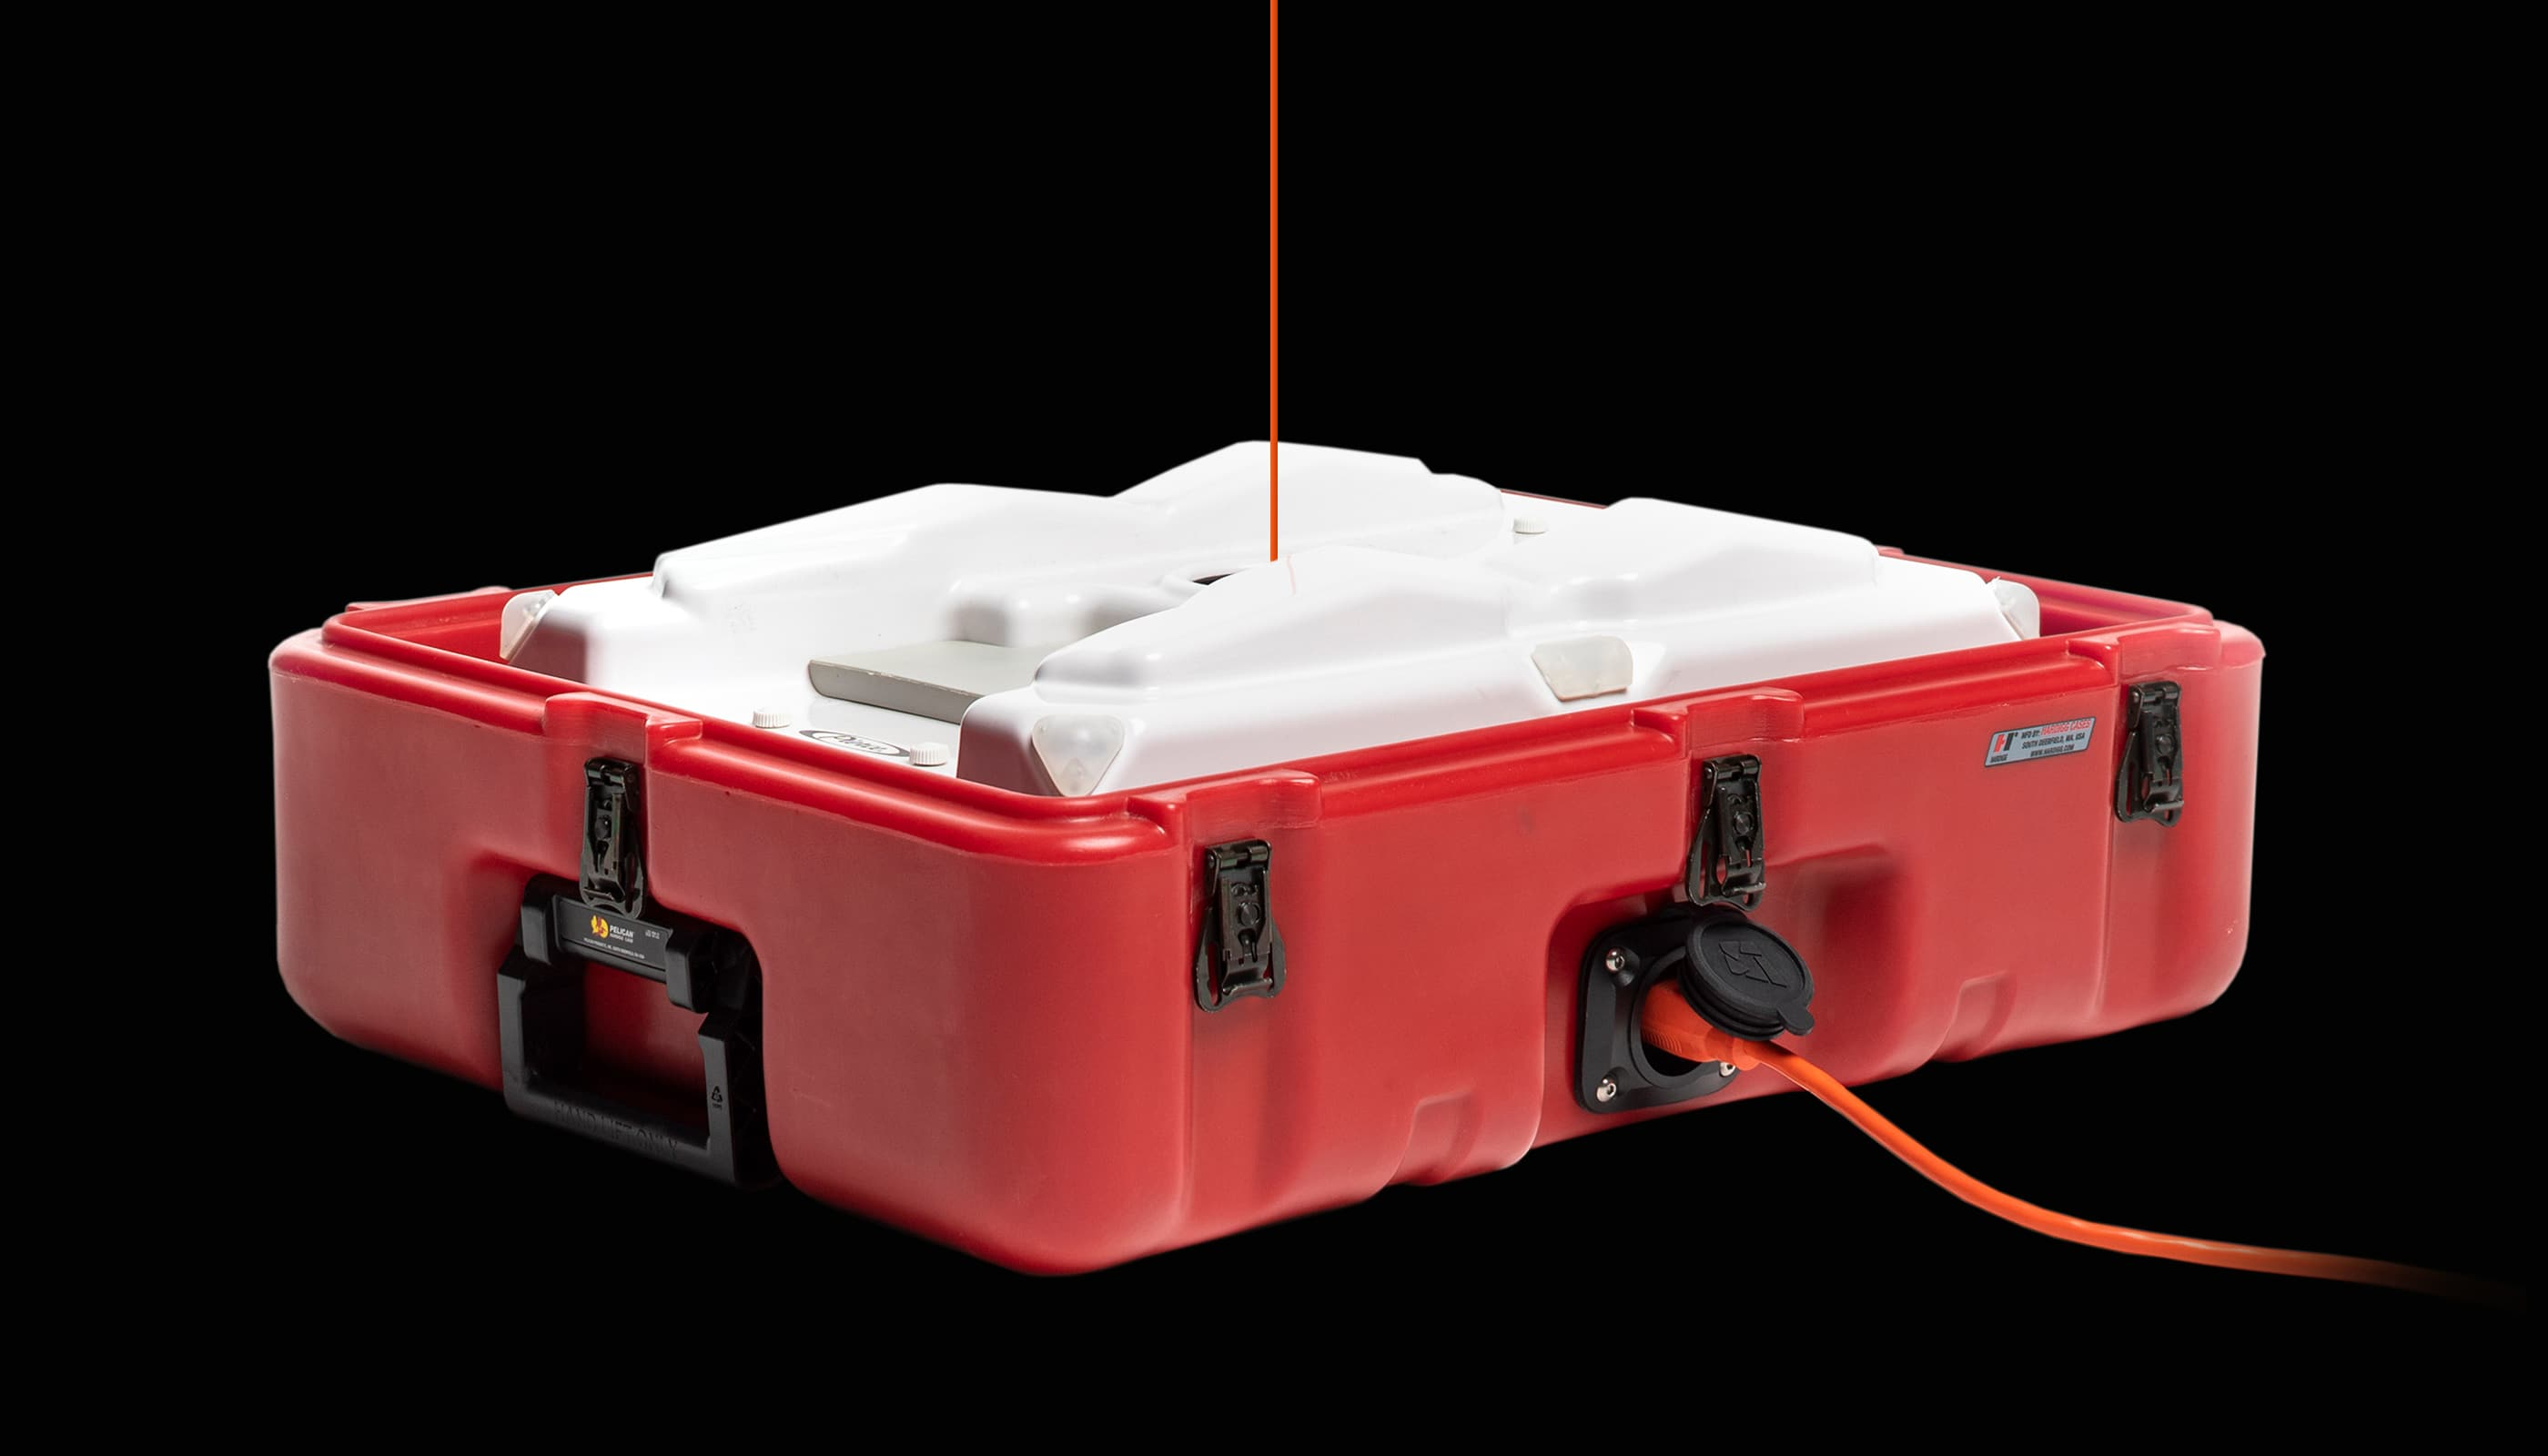 tethered UAV placed in the transport case